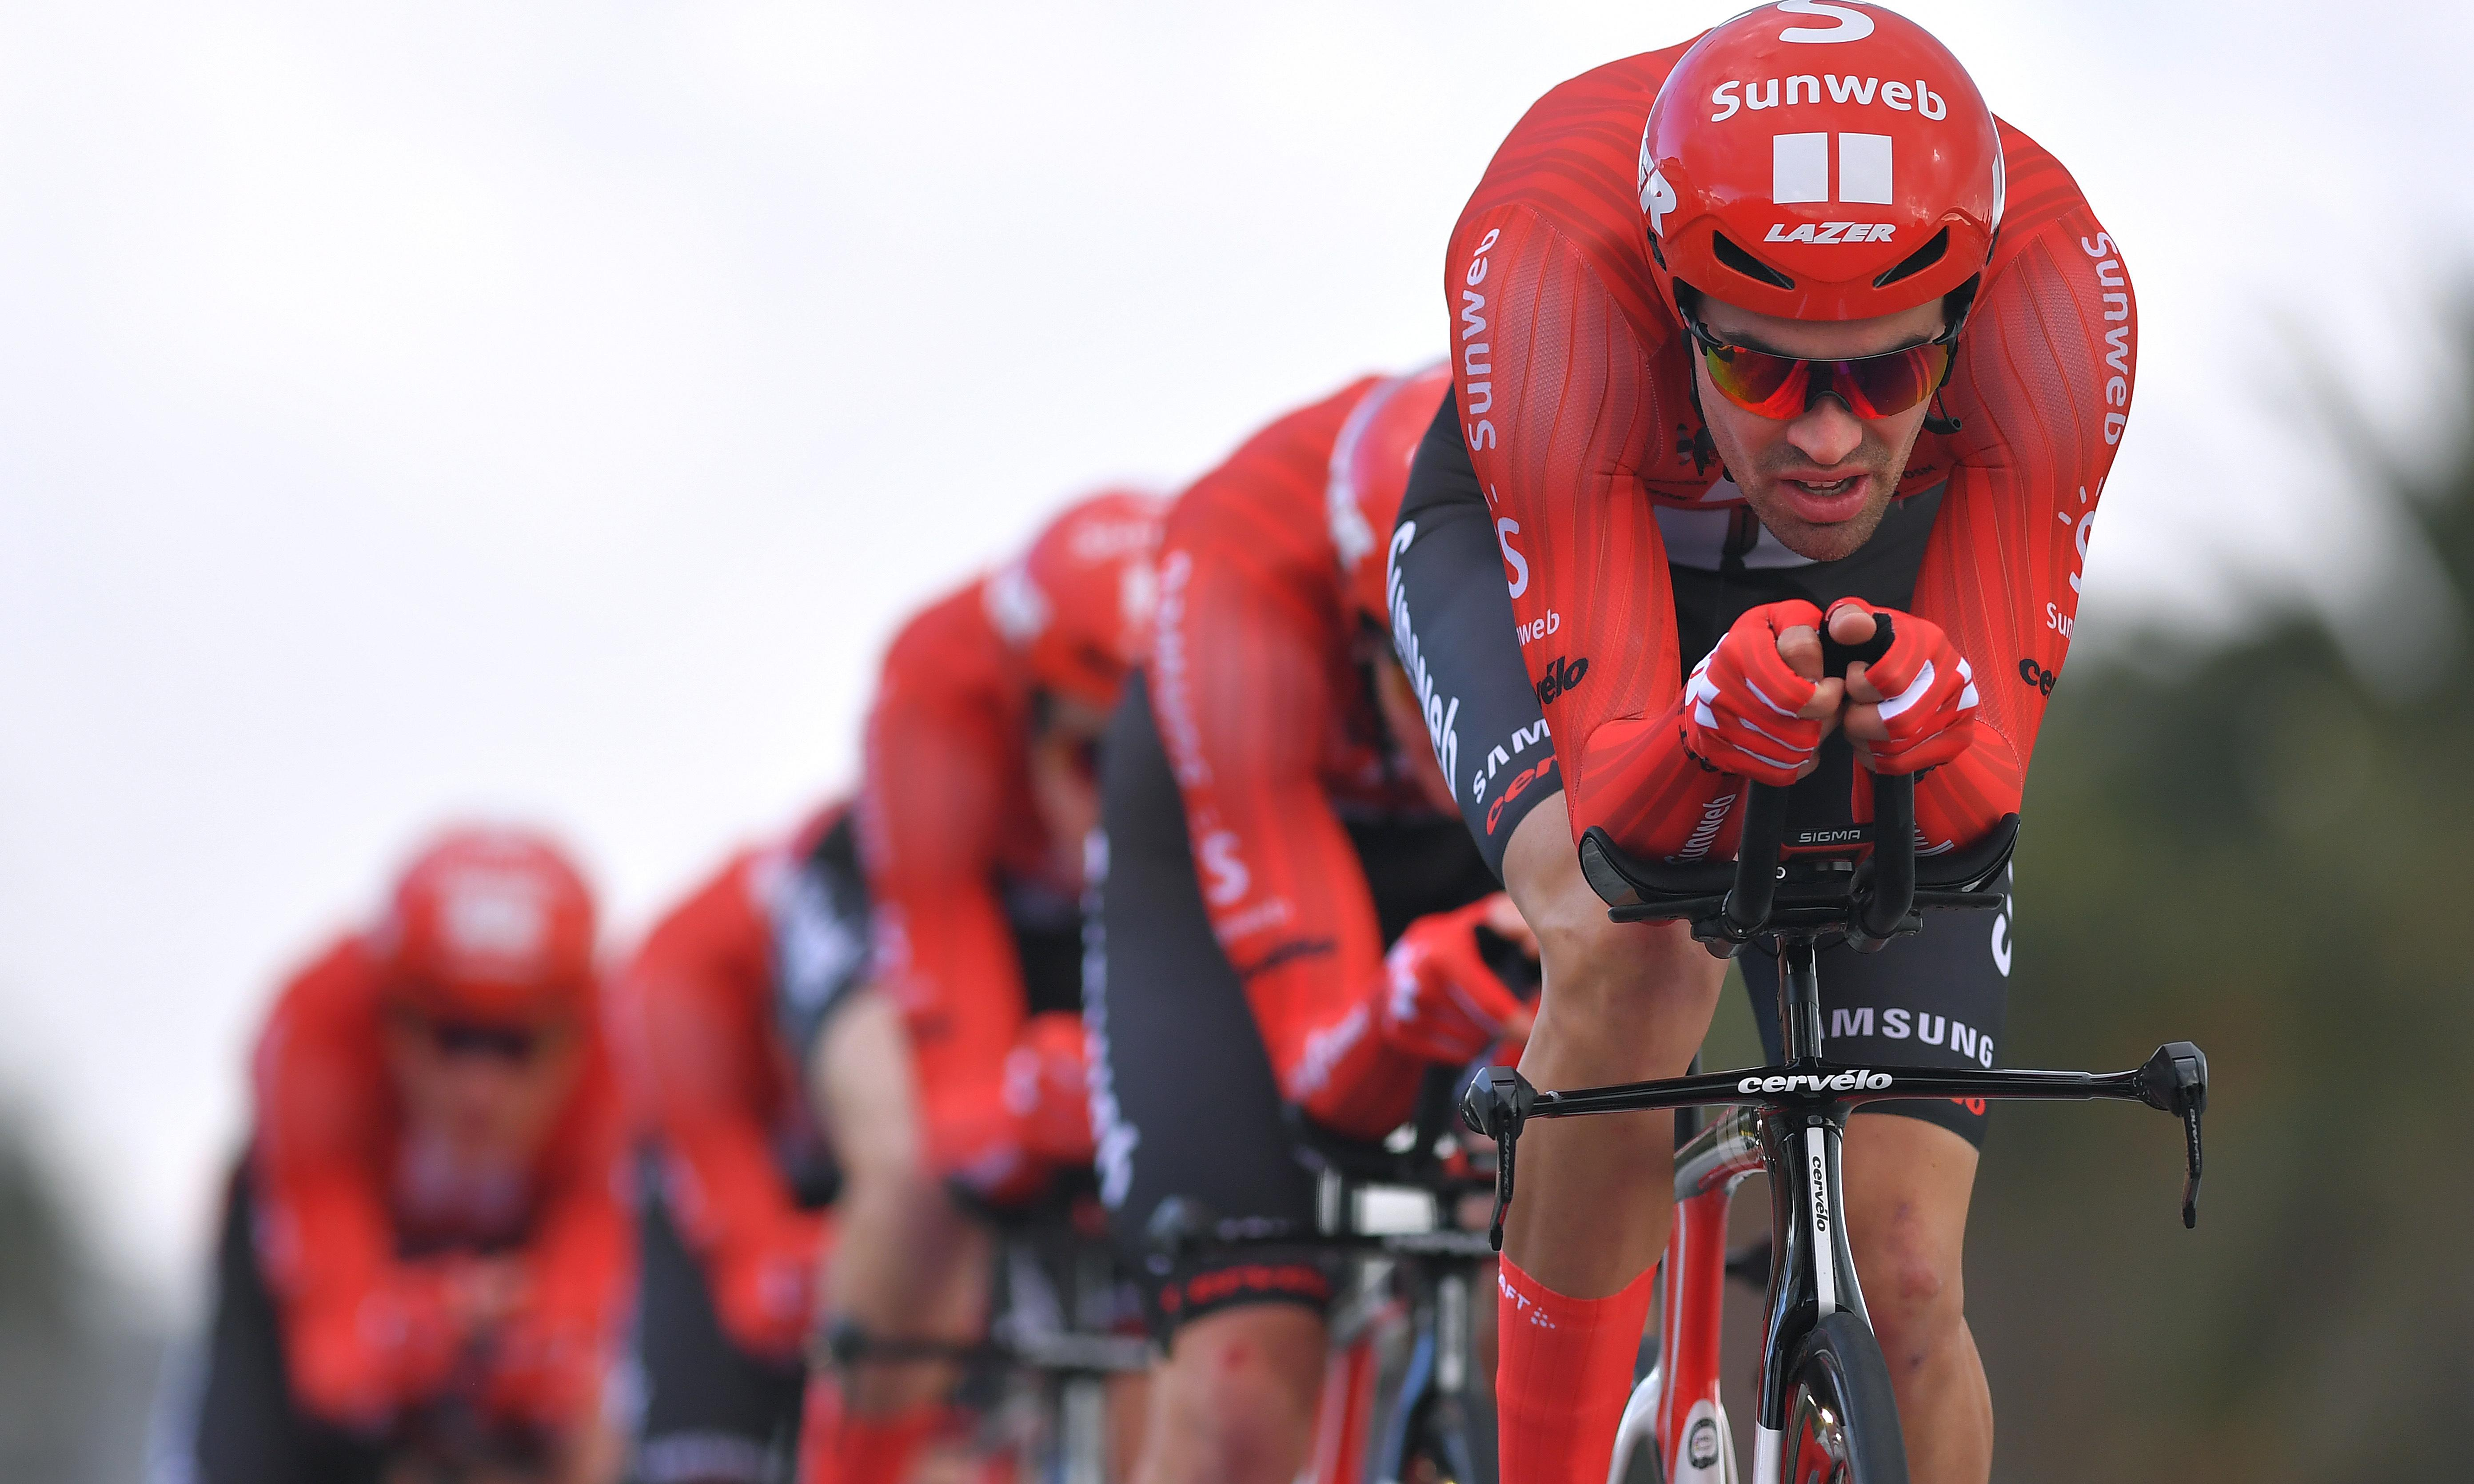 Tom Dumoulin to miss Tour de France after failing to recover from knee injury